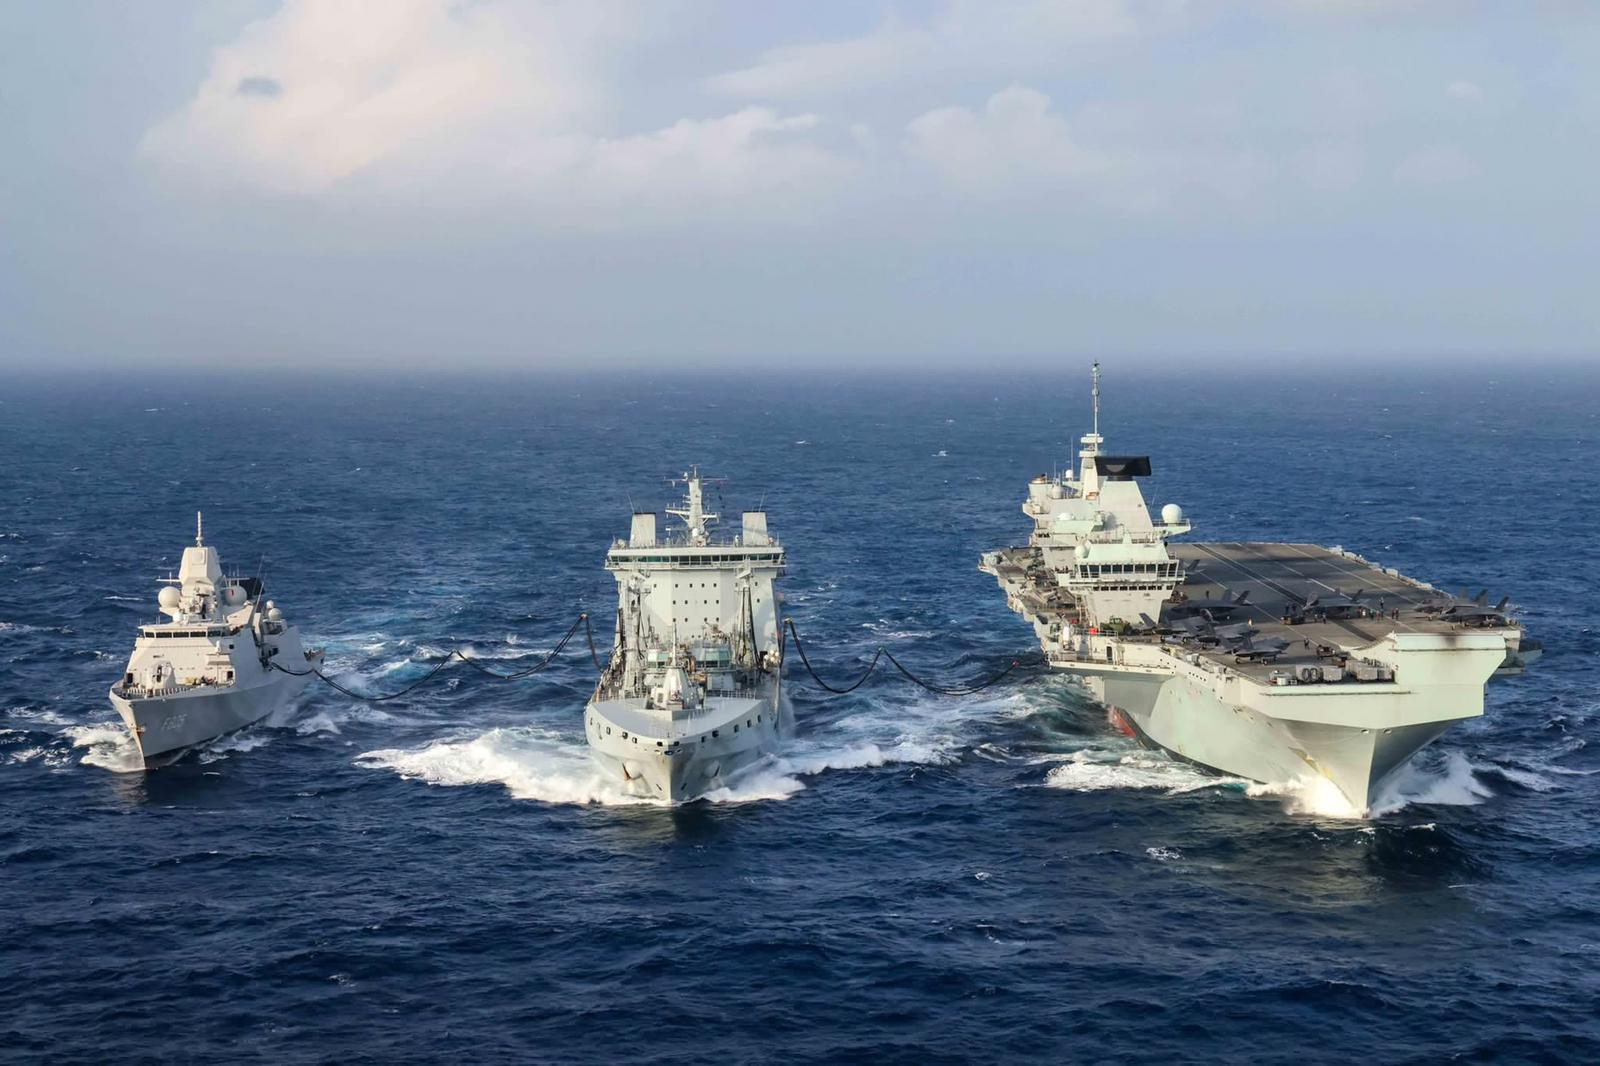 UK & USA Led Carrier Strike Group • Show of Strength • Philippine Sea, Oct 2021